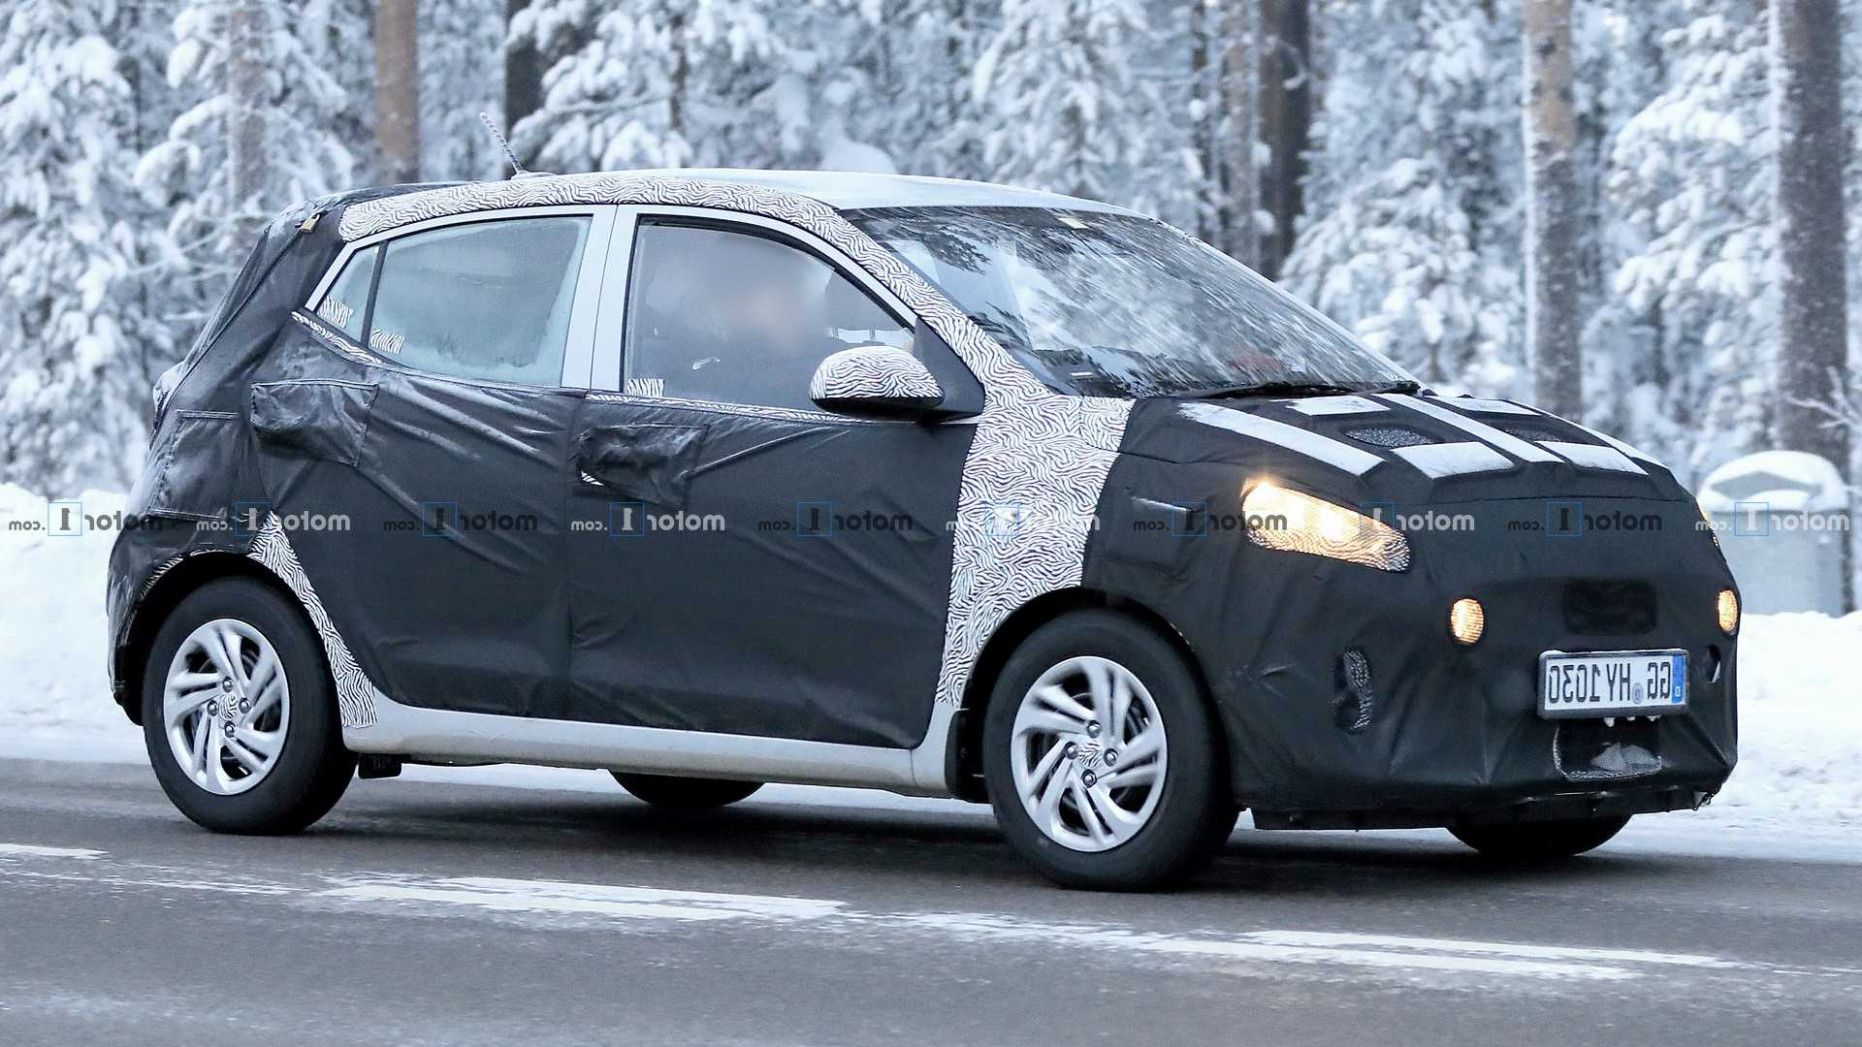 Learn All About Hyundai I10 Grand 2020 From This Politician Hyundai New Elantra Grands